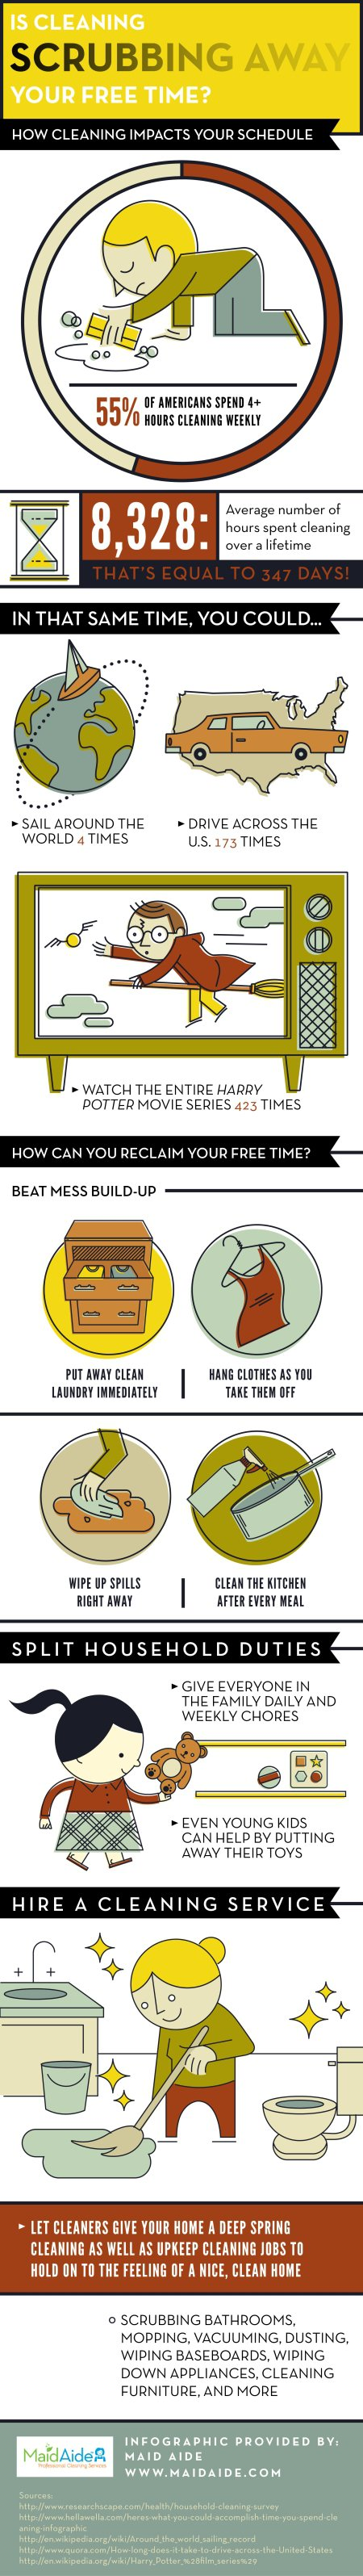 Is Cleaning Scrubbing Away Your Free Time [INFOGRAPHIC]